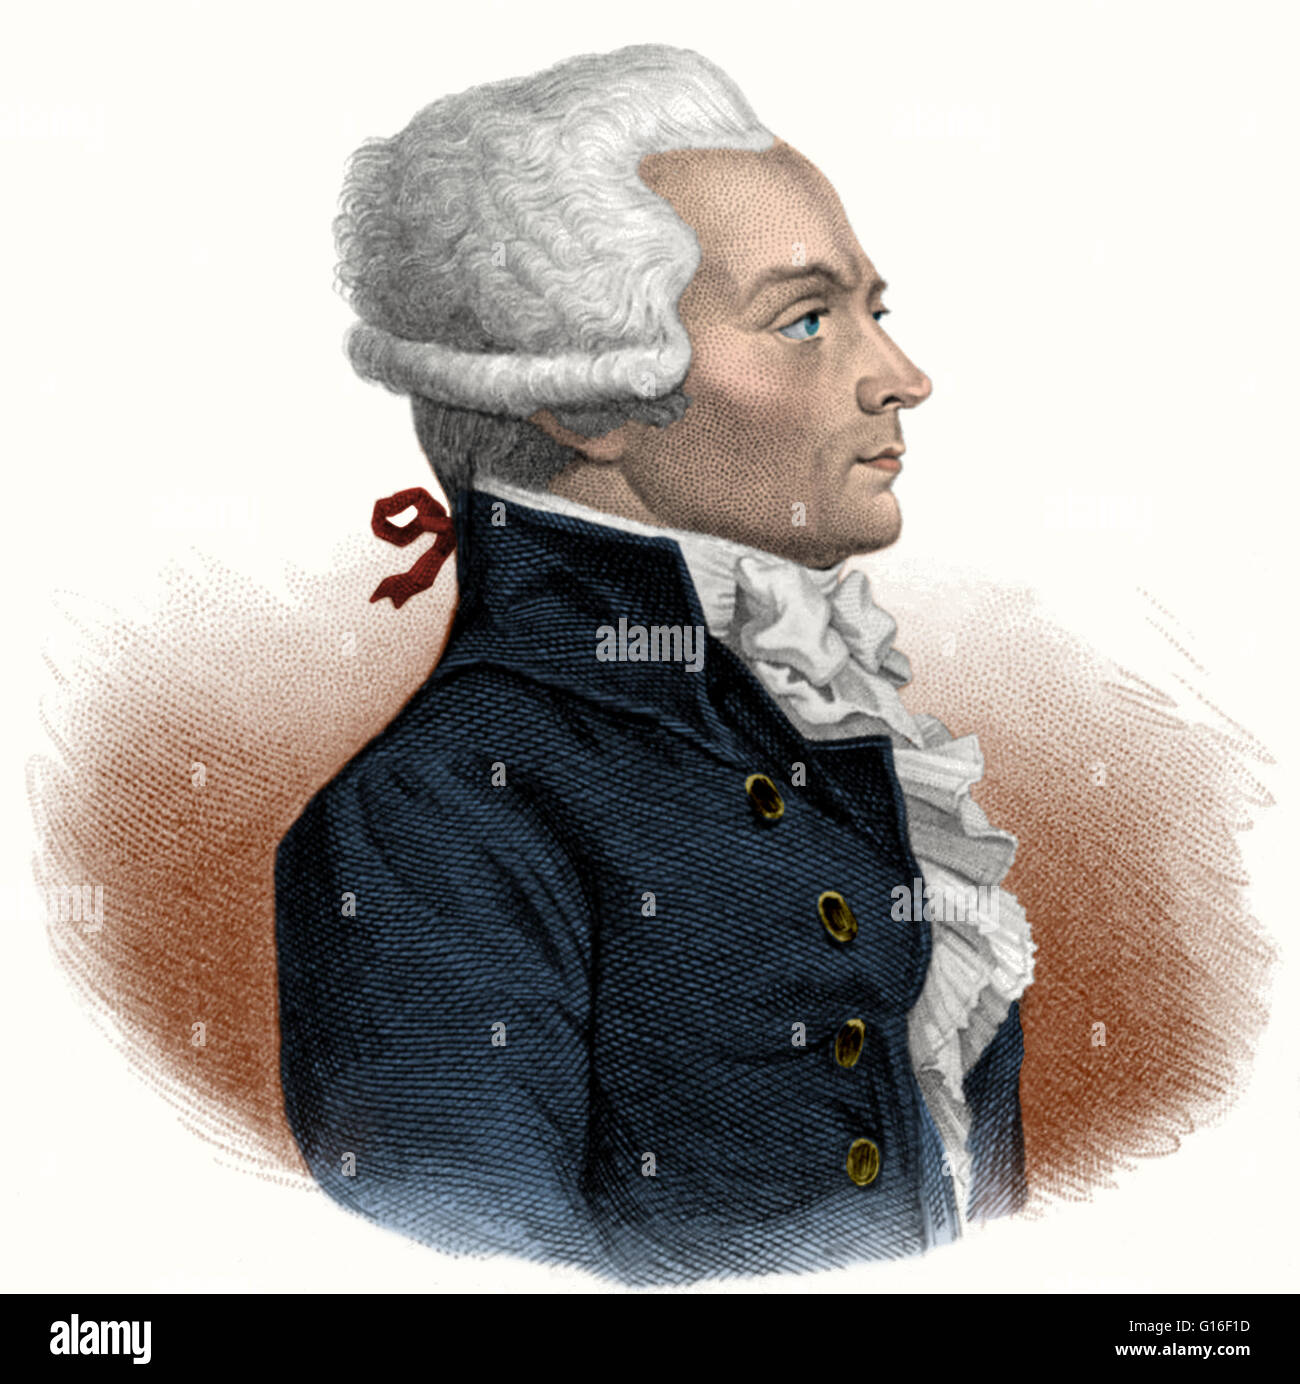 Maximilien Francois Marie Isidore Robespierre (May 6, 1758 - July 28, 1794) was a French lawyer and politician, - Stock Image